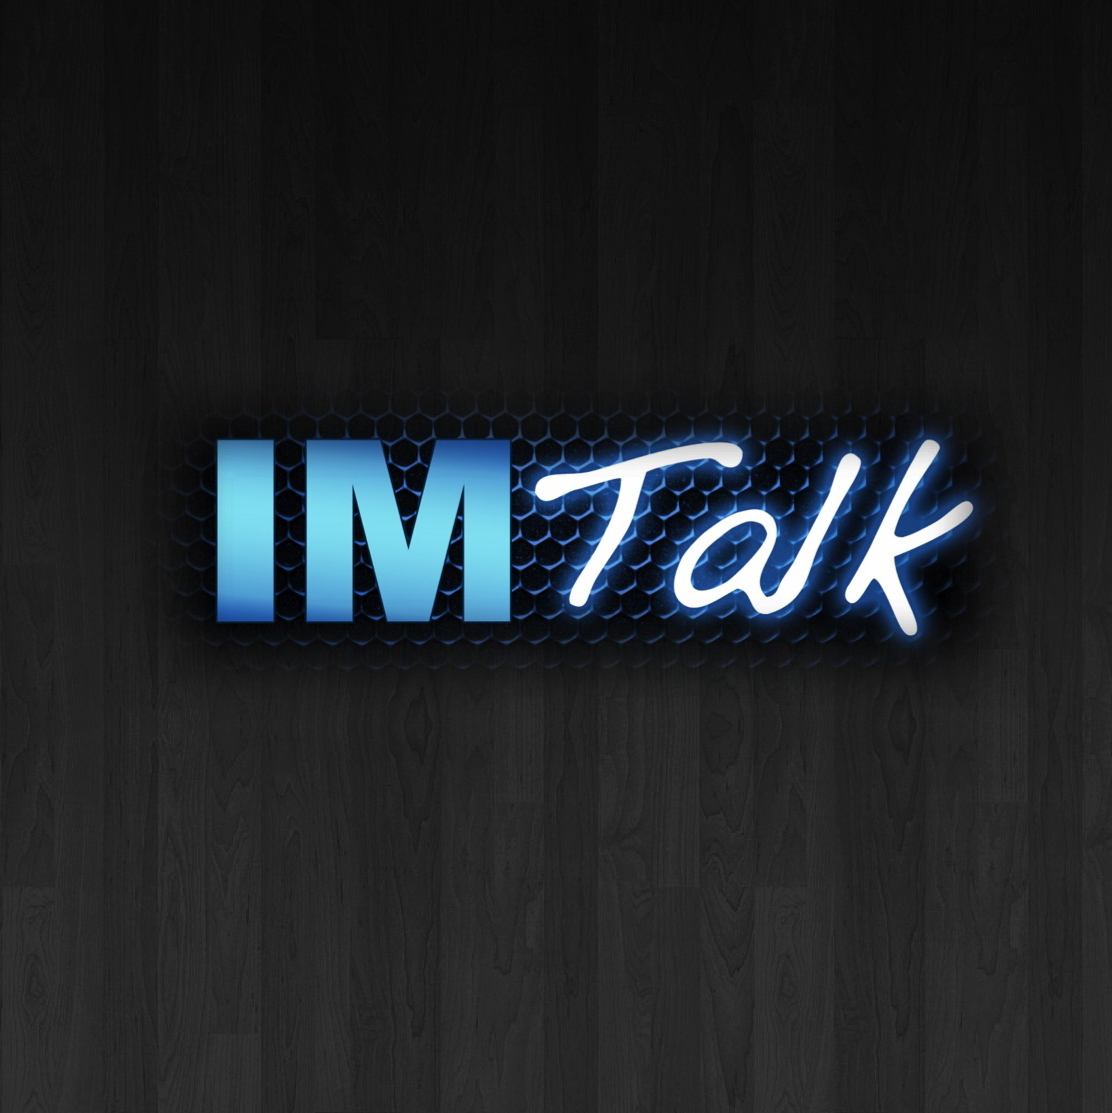 IMTalk Episode 734 - Andrew Huberman Ph.D. show art